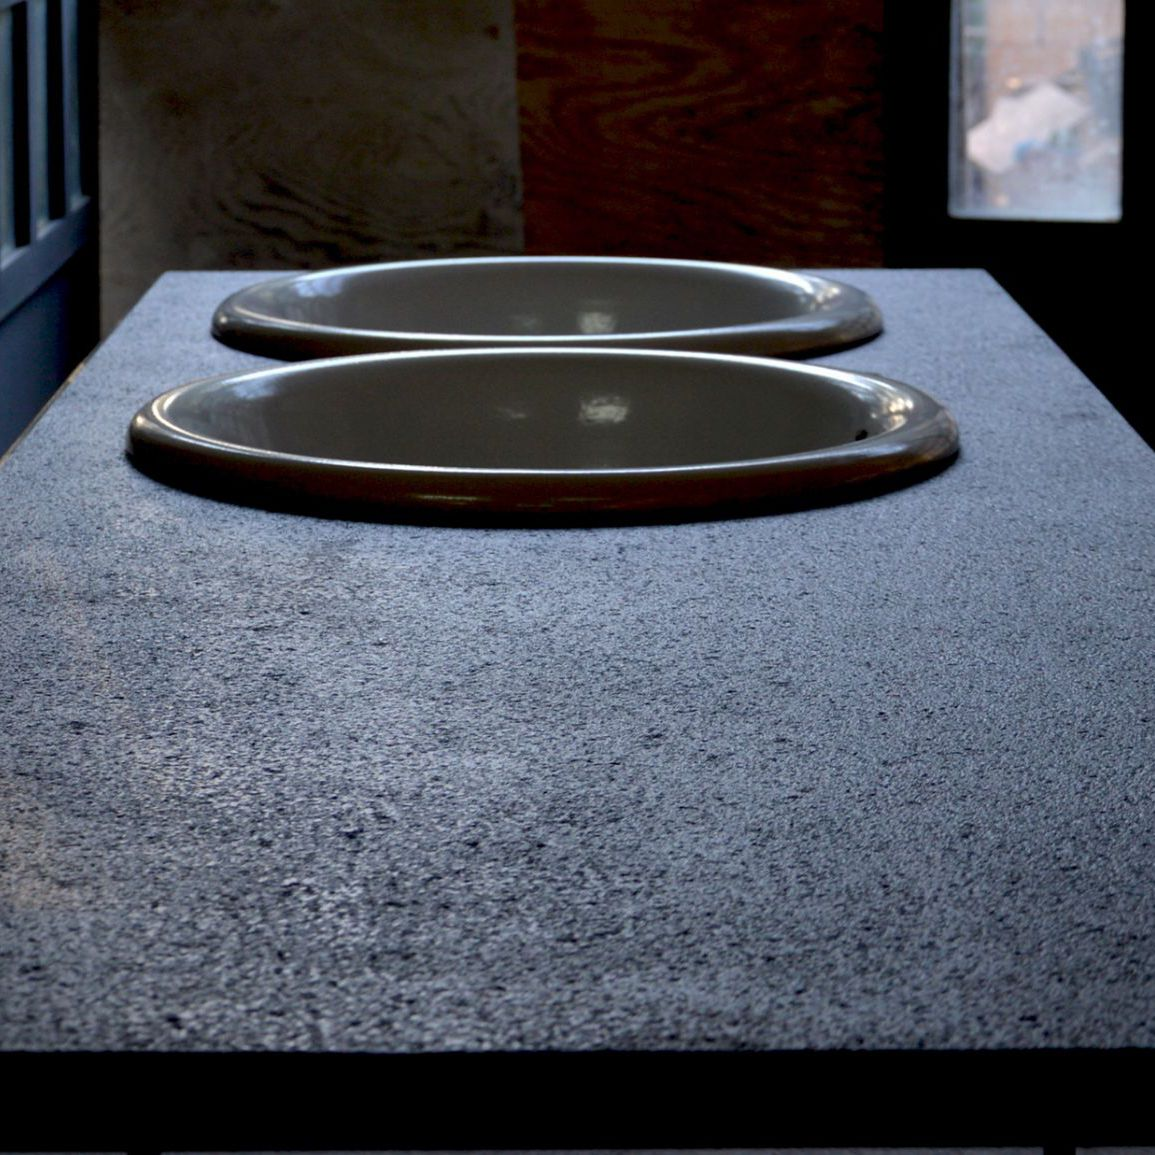 Lava Stone Countertop Basaltic Militello Ceramiche Kitchen Bathroom Stain Proof